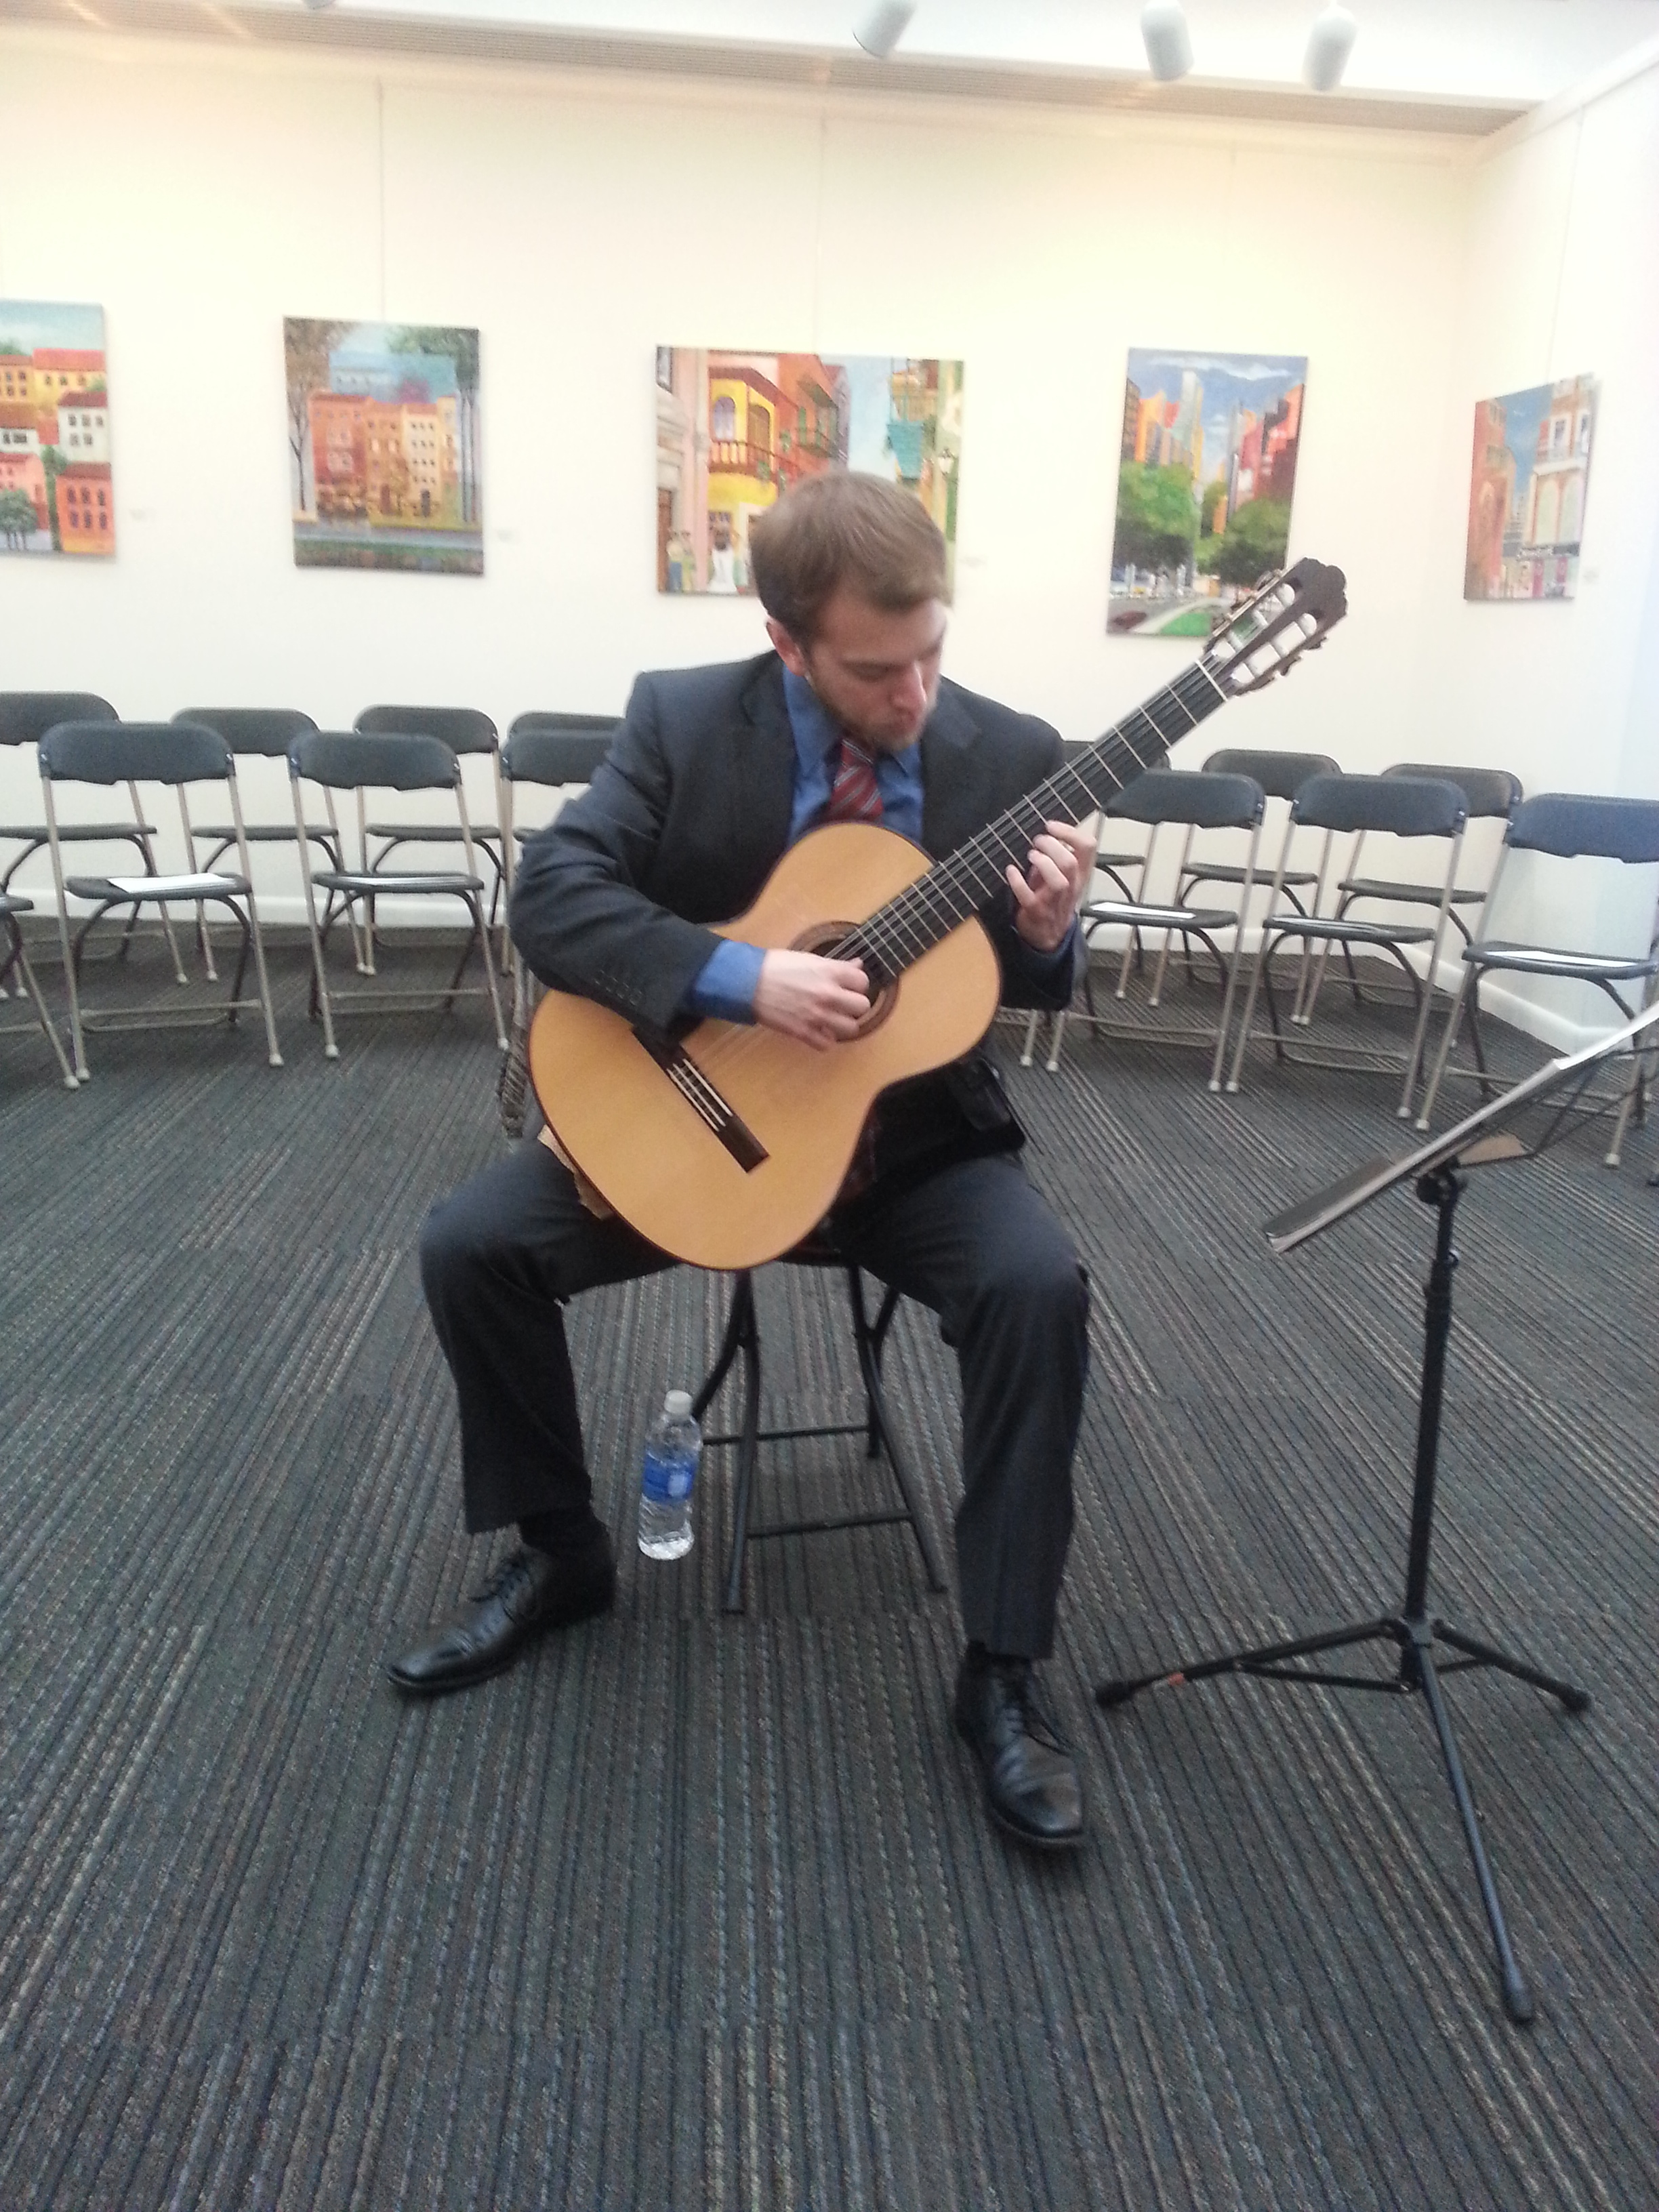 - Ben is an active performing classical guitarist, providing music for a wide variety of occasions including weddings, art gallery openings, private dinners, corporate events, and fundraisers. His vast repertoire includes light classical and romantic music, pop and rock songs, Spanish Guitar music, Bach suites, and much more.Listed below are some of the common selections, however special requests for music are accepted and encouraged. For a Full Repertoire List, please click hereTraditional songs• Lute Suites - J.S. Bach• Winter, Second Movement and Spring, First Movement from The Four Seasons - Antonio Vivaldi• Jesu, Joy of Man's Desiring - J.S. Bach• Pavane - Fauré • Pachelbel's Canon in D• Schubert Ave Maria• Wagner Bridal March• Mendelssohn Wedding March• Fur Elise - BeethovenSpanish Pieces• Recuerdos del Alhambra - Tarrega• Spanish Romance• Asturias - Albeniz• Sevillana - Turina• The Miller's Dance - de Falla• Castles of Spain - TorrobaPop/Rock/Other • Various Beatles tunes including: Blackbird, Yesterday, Hello/Goodbye, Here Comes the Sun, Penny Lane, While My Guitar Gently Weeps, and many more• Selected Frank Sinatra tunes include